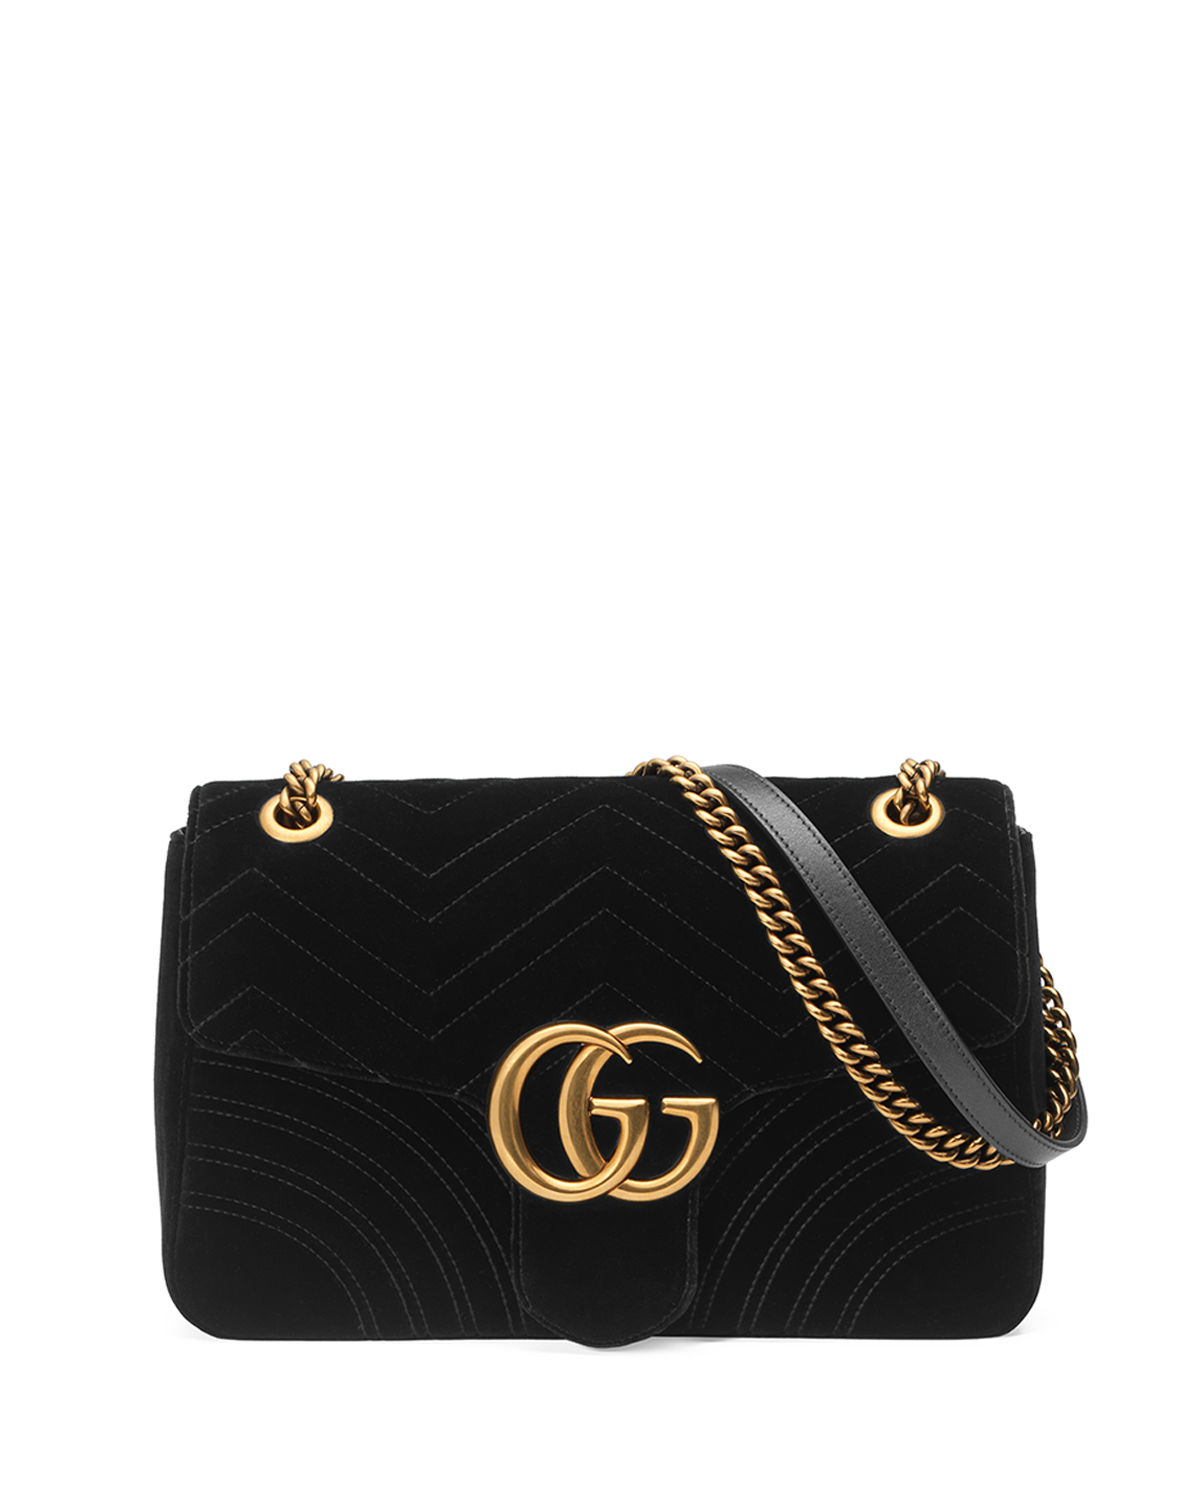 06e1993e48a9 Gucci GG Marmont Medium Quilted Shoulder Bag | Neiman Marcus